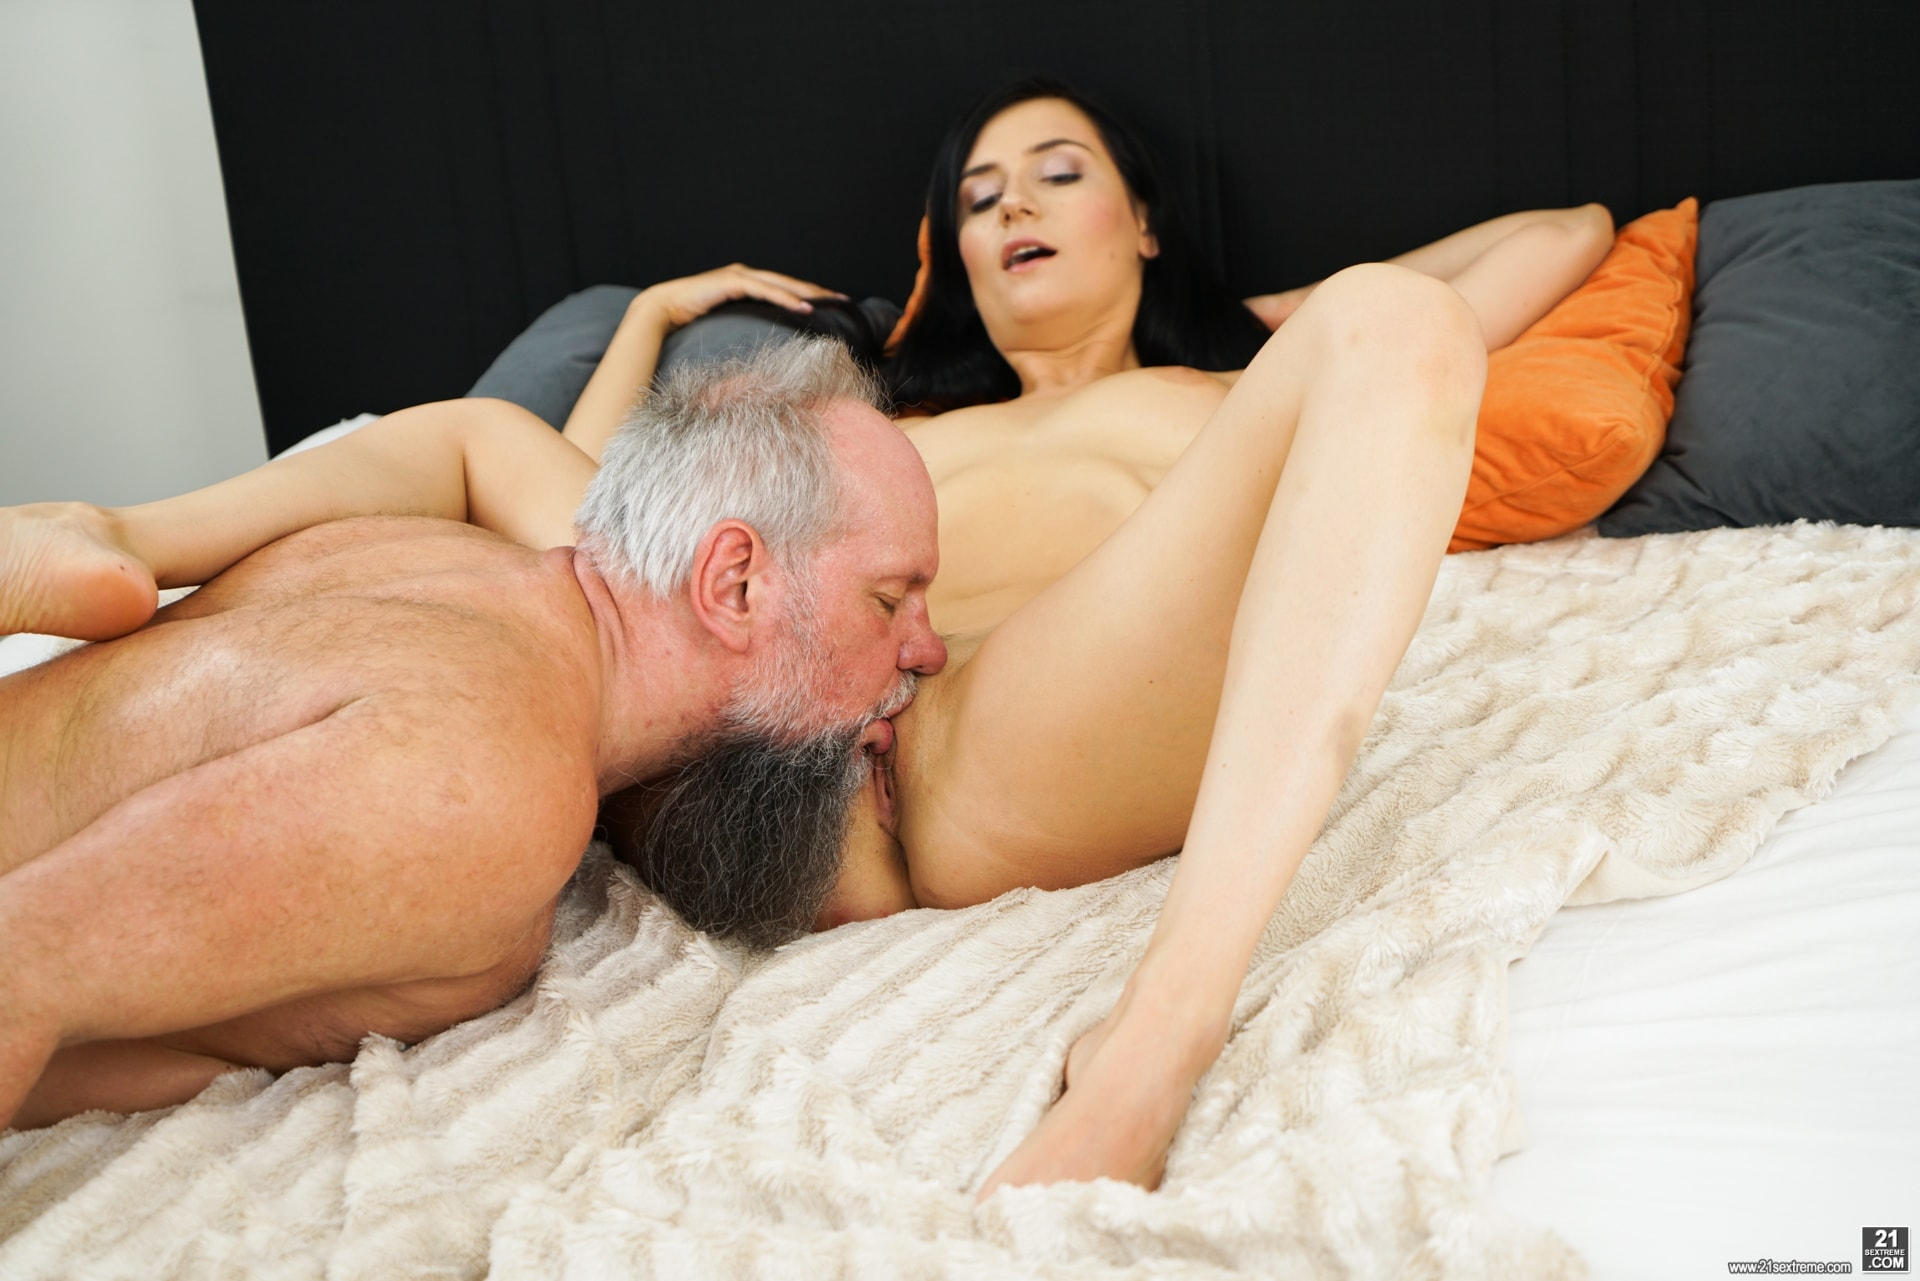 21Sextury 'Don't Let It End' starring Melody Mae (Photo 78)